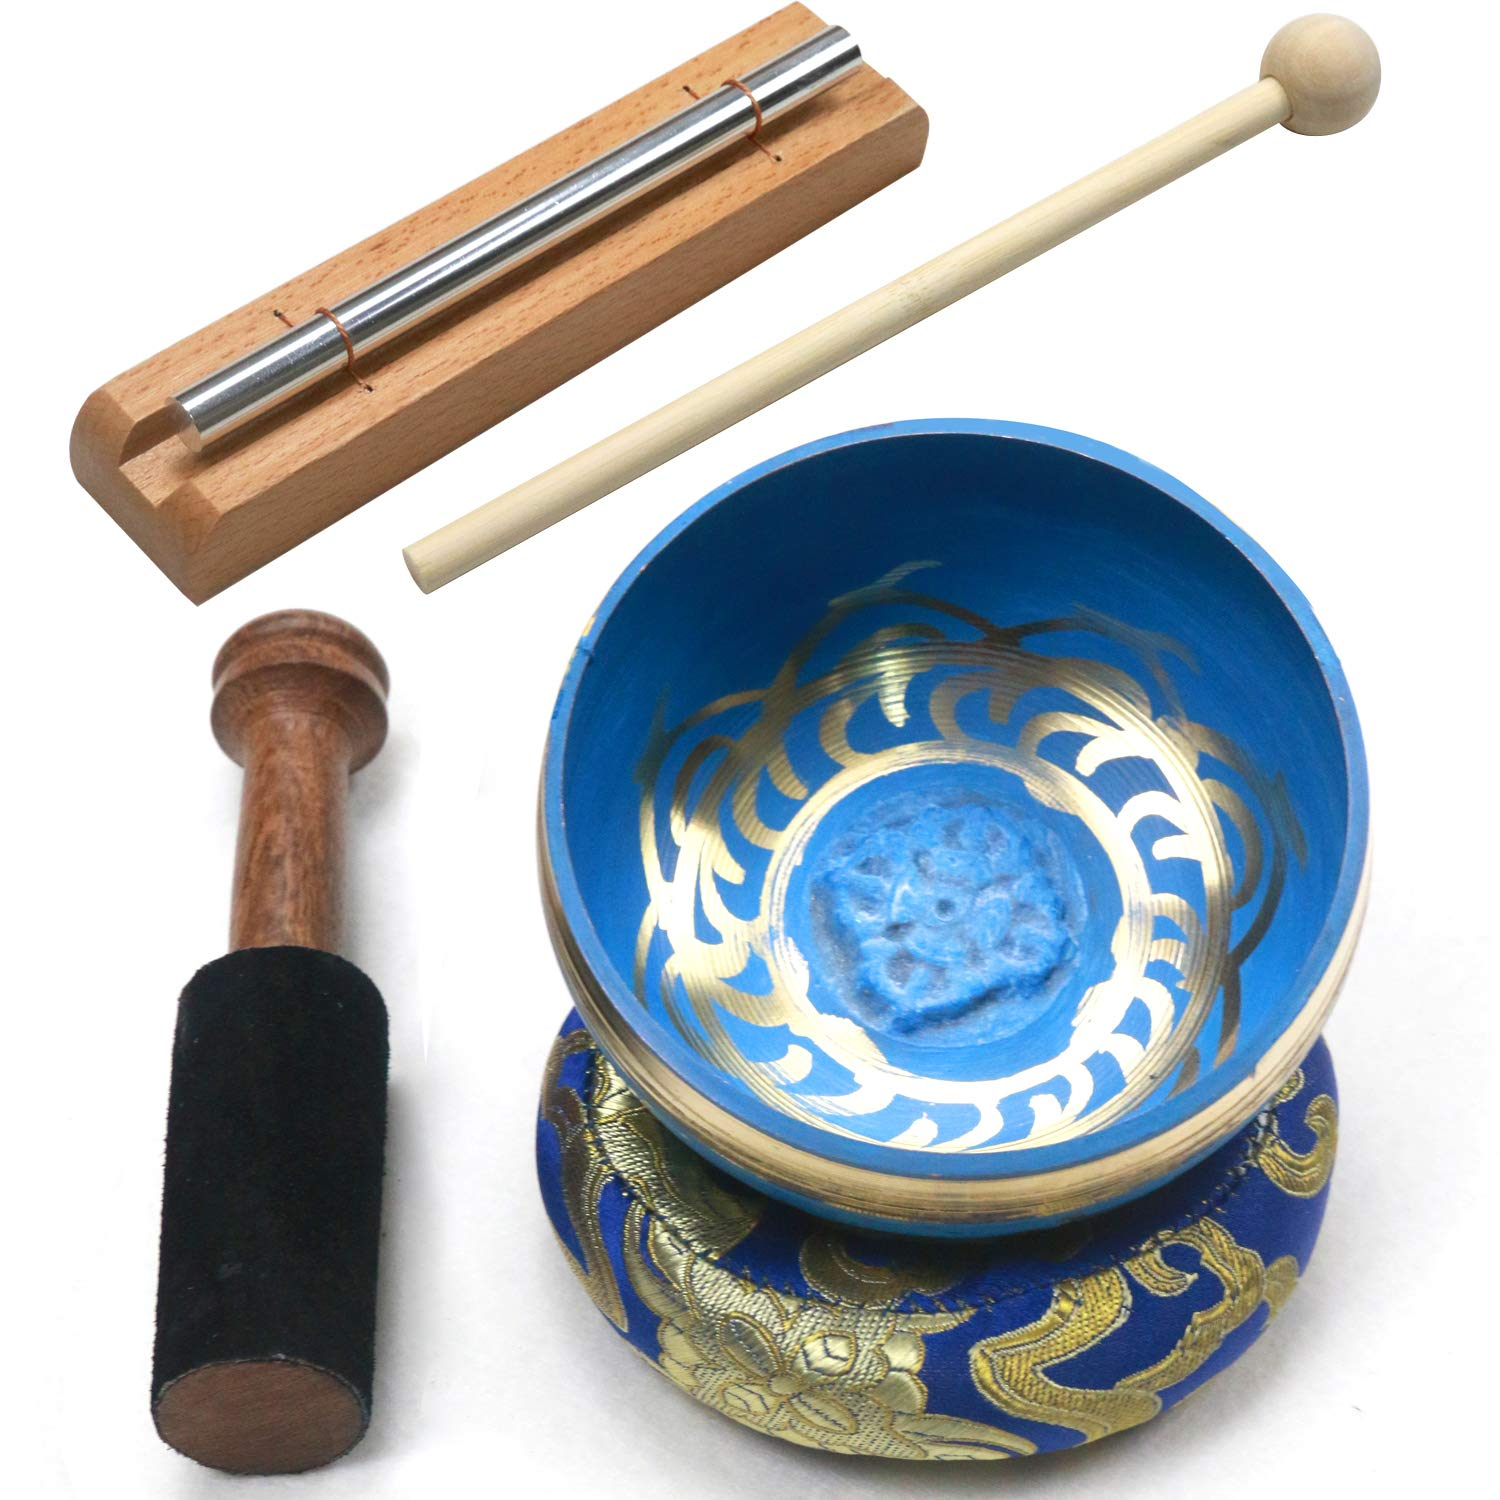 Tibetan Singing Bowl Set ~ Handmade Design ~ Meditation Chime~ With Dual Surface Mallet and Silk Cushion~ Single Tone Energy Chime for Meditation by SNAKPALS